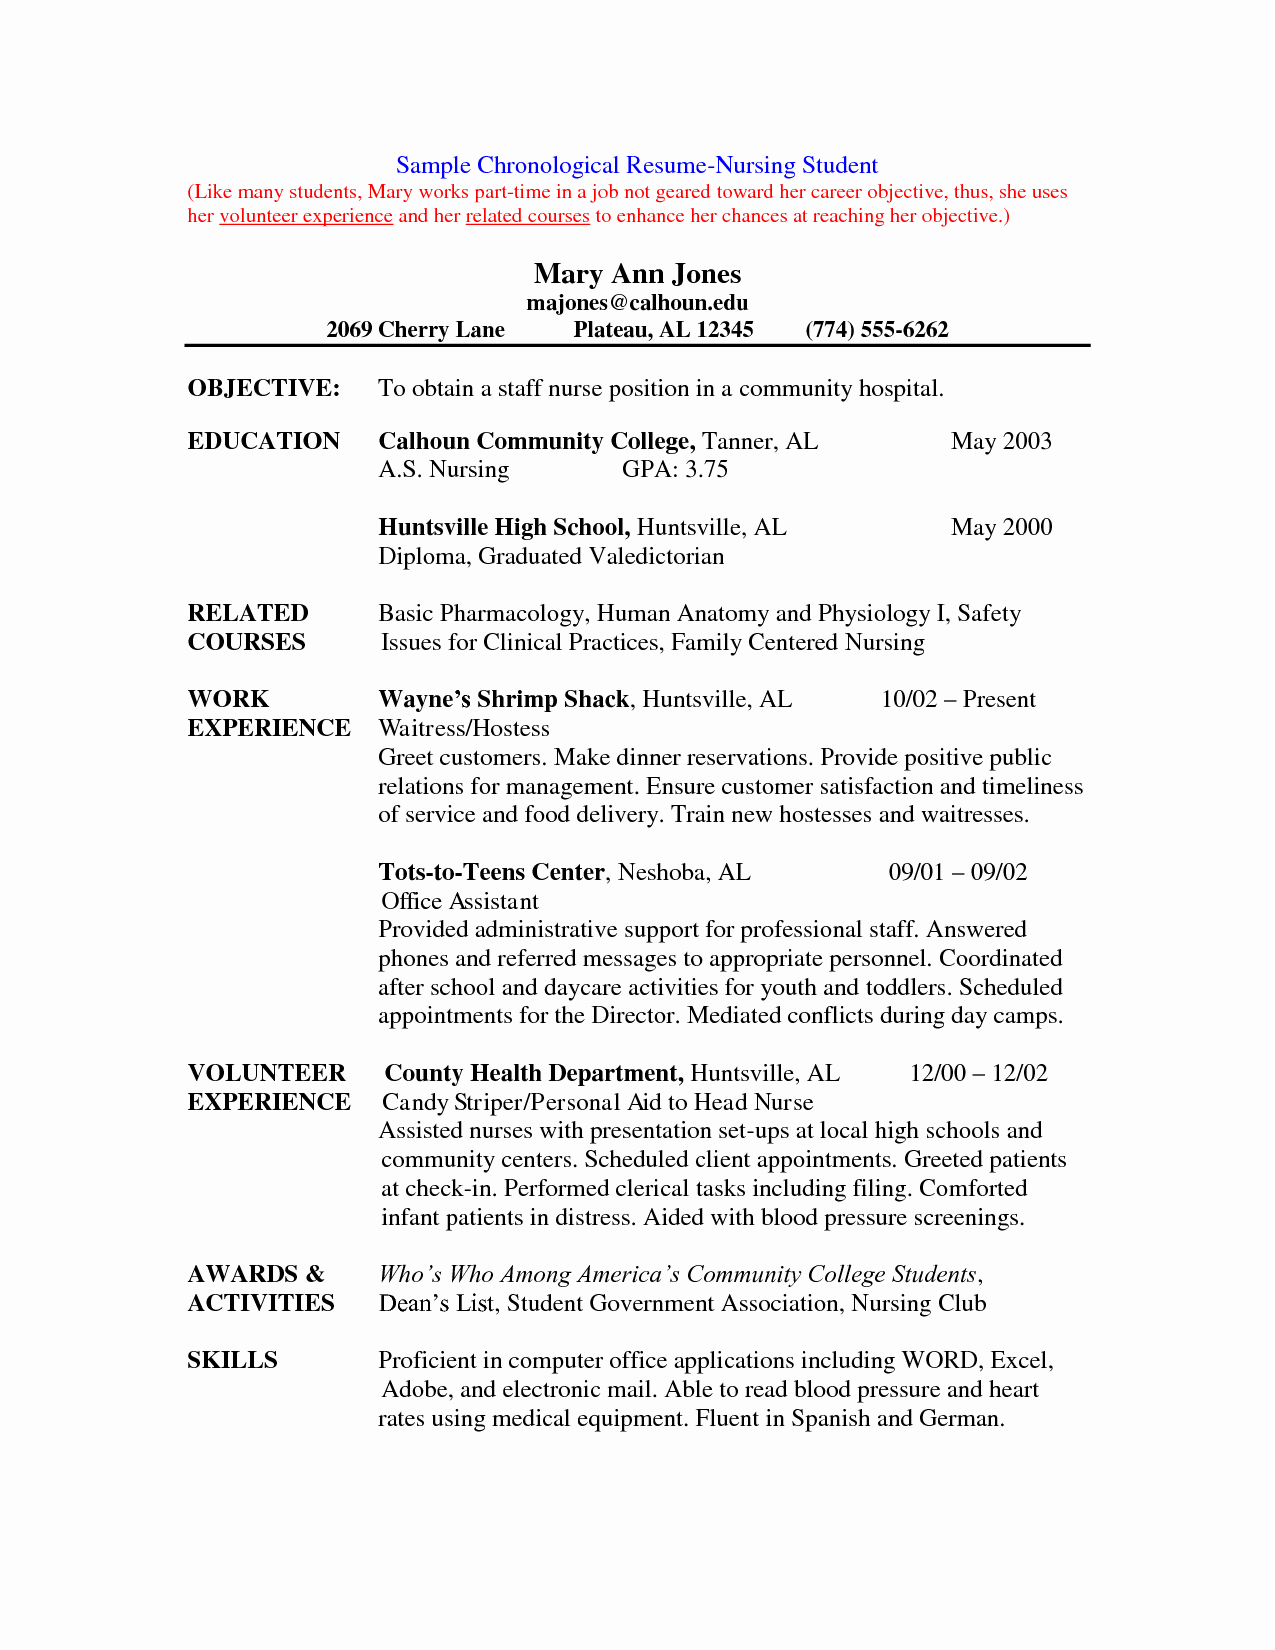 Nursing Student Resume Template Beautiful Nursing Student Resume